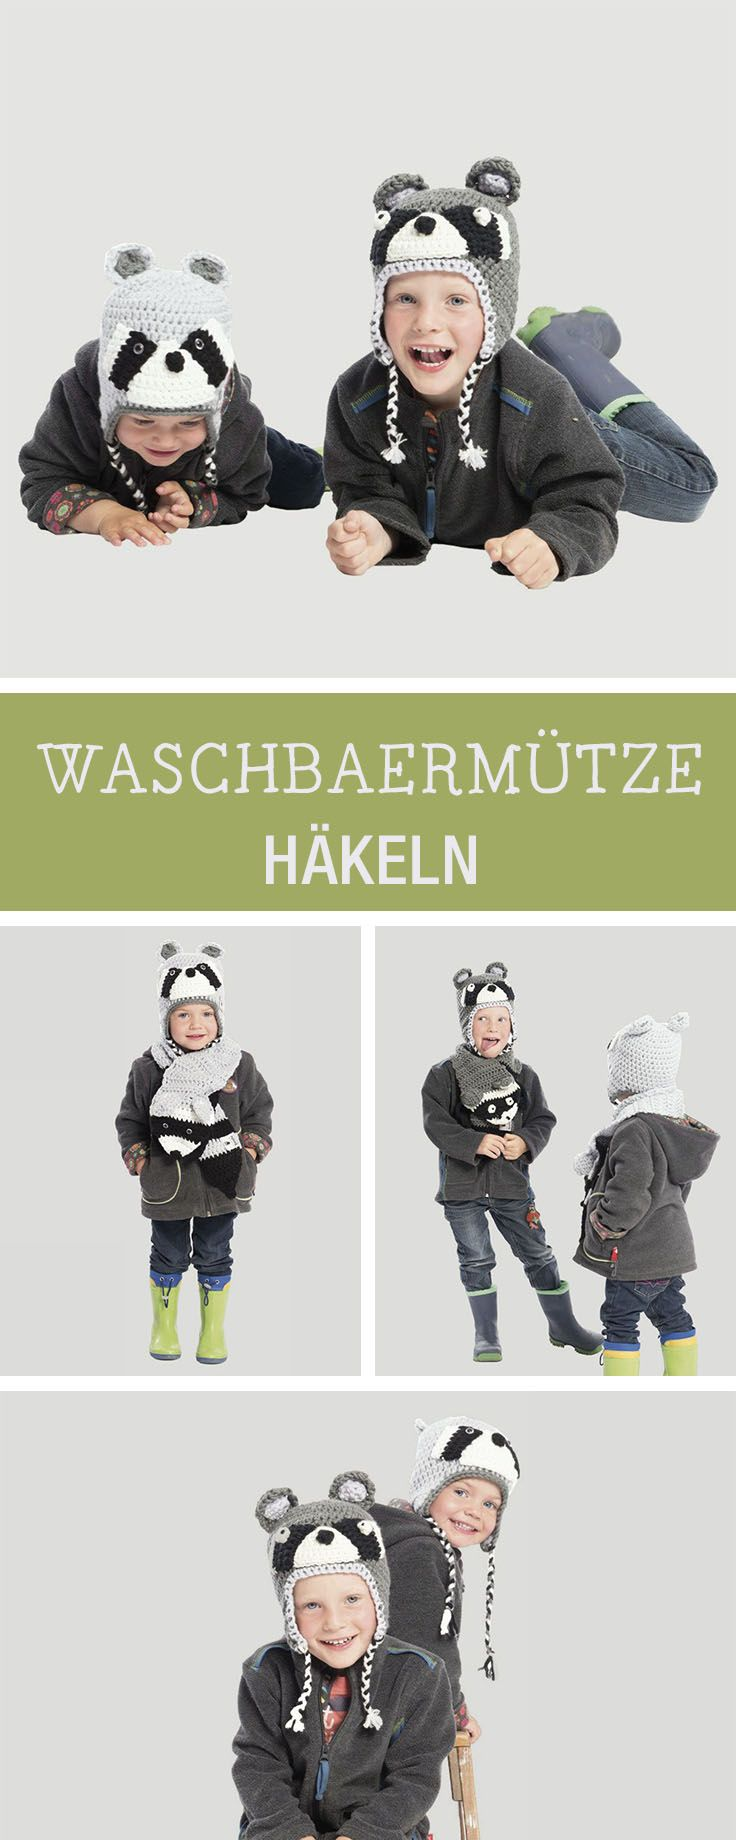 Mütze für Kinder häkeln mit Waschbär-Gesicht / crocheted head for children with little raccoon face via DaWanda.com